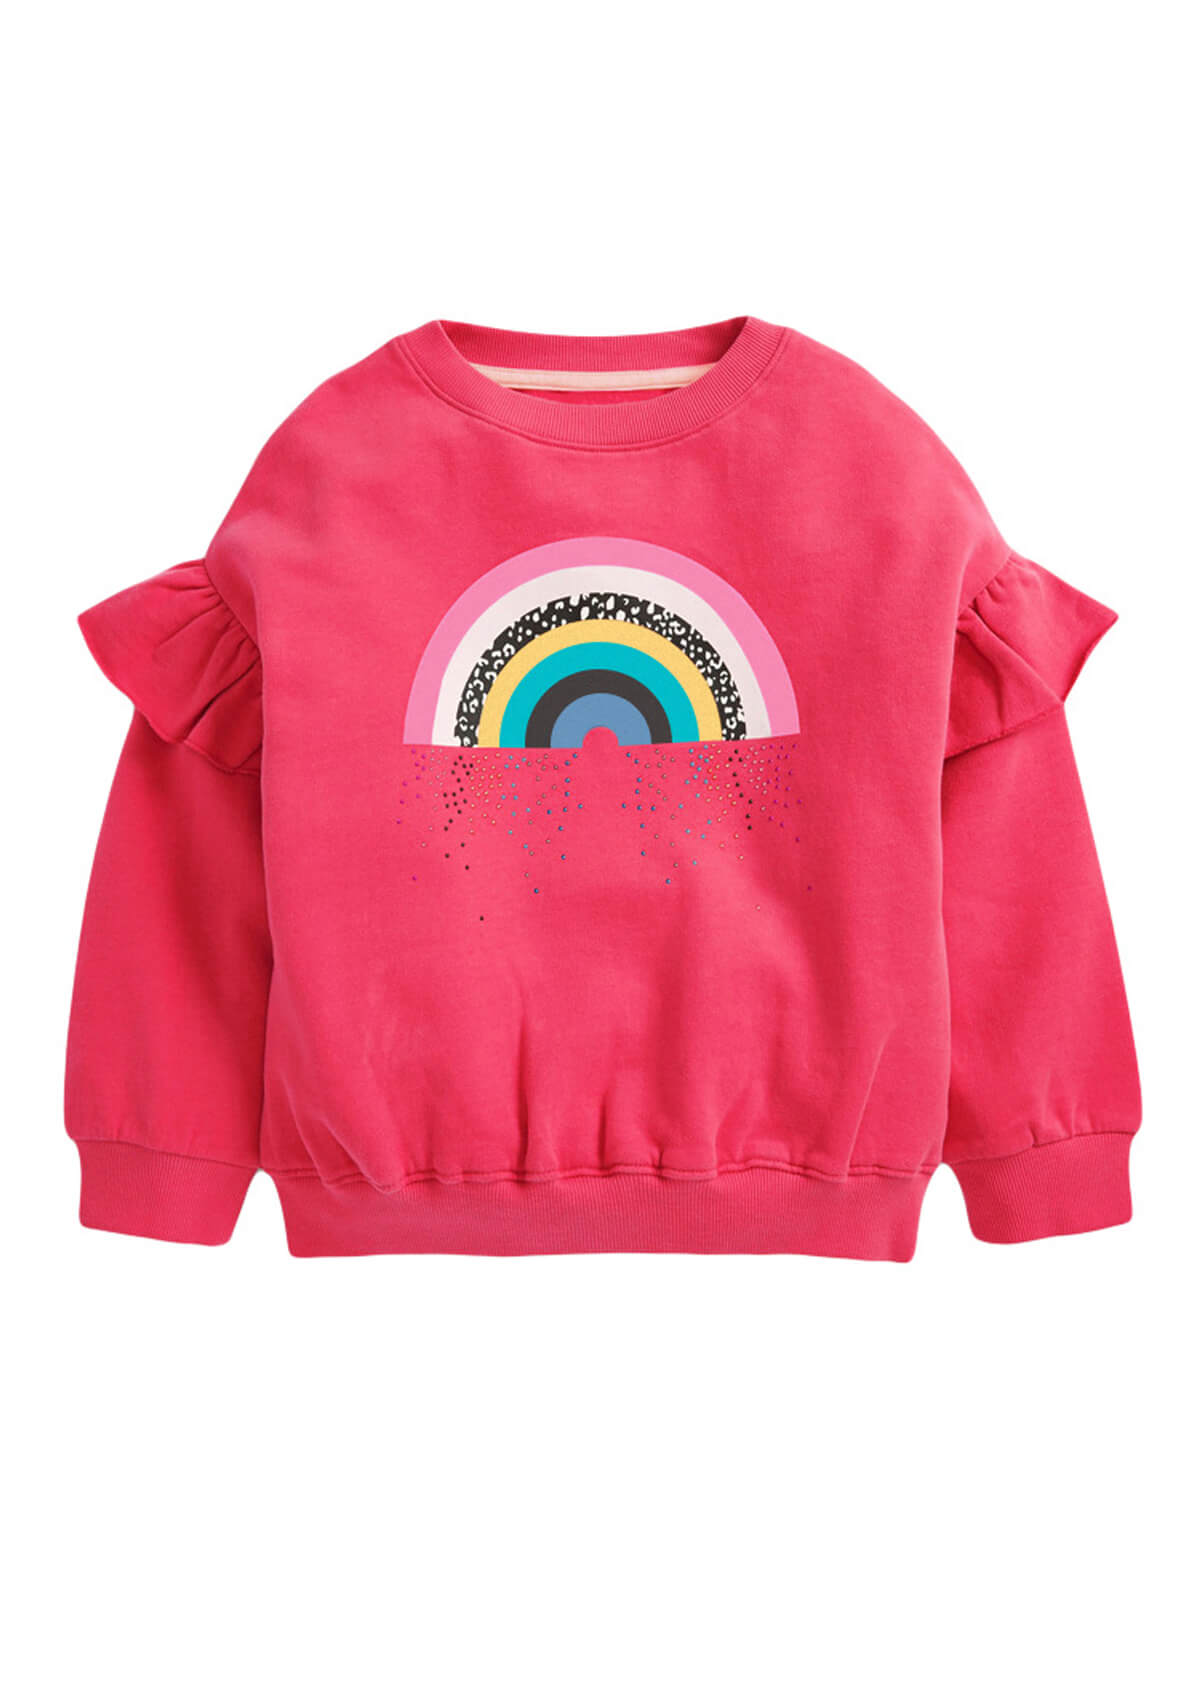 Cartoon Rainbow T-shirt